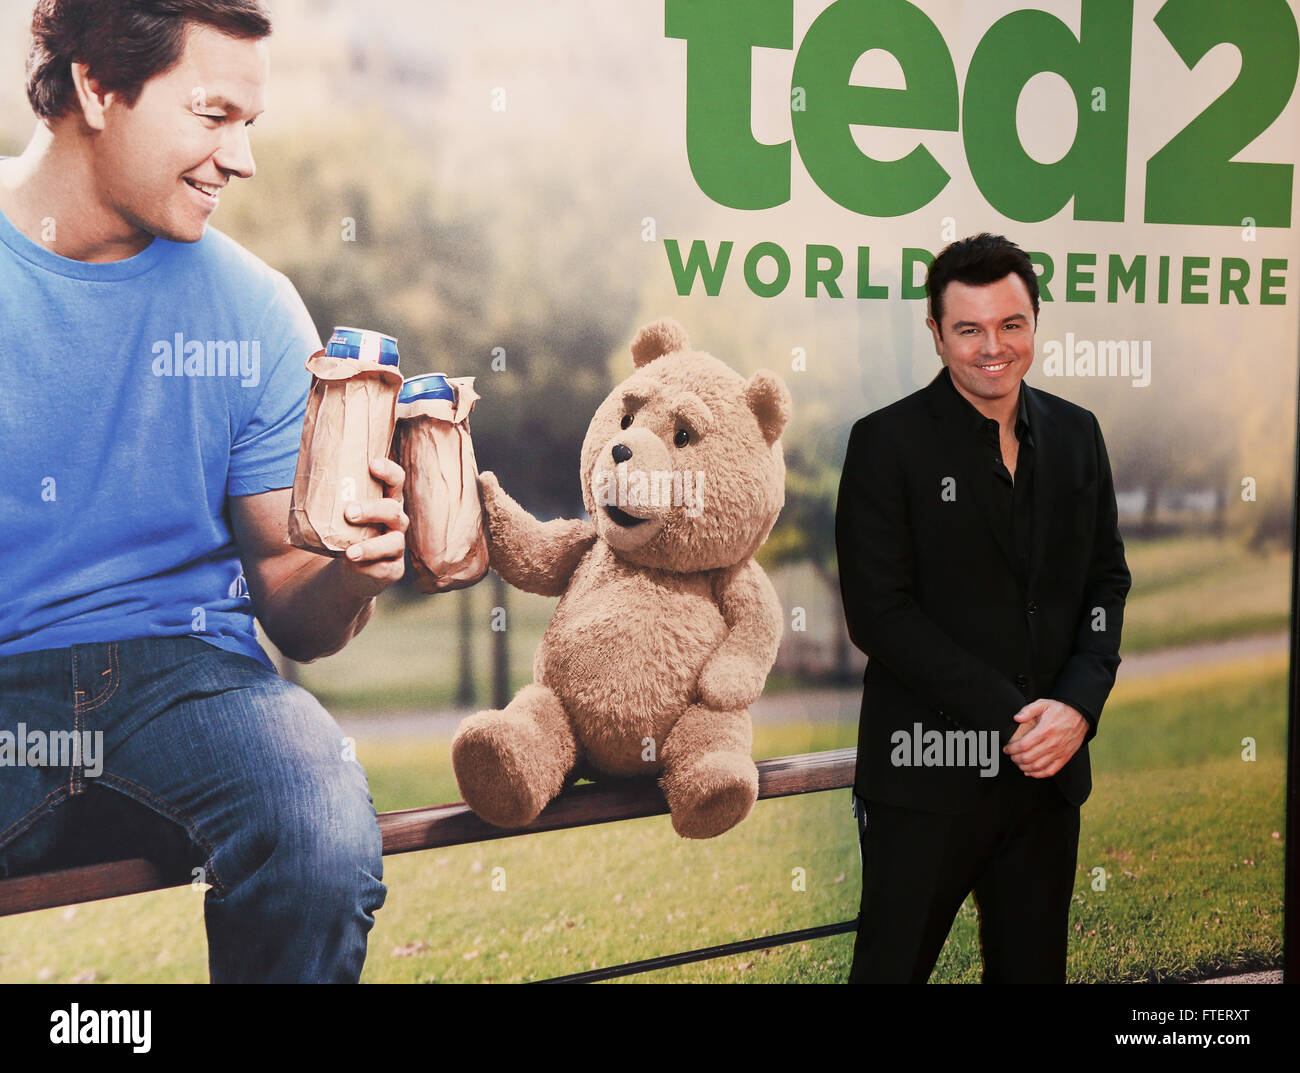 NEW YORK-JUN 24: Seth MacFarlane attends the 'Ted 2' world premiere at the Ziegfeld Theatre on June 24, - Stock Image